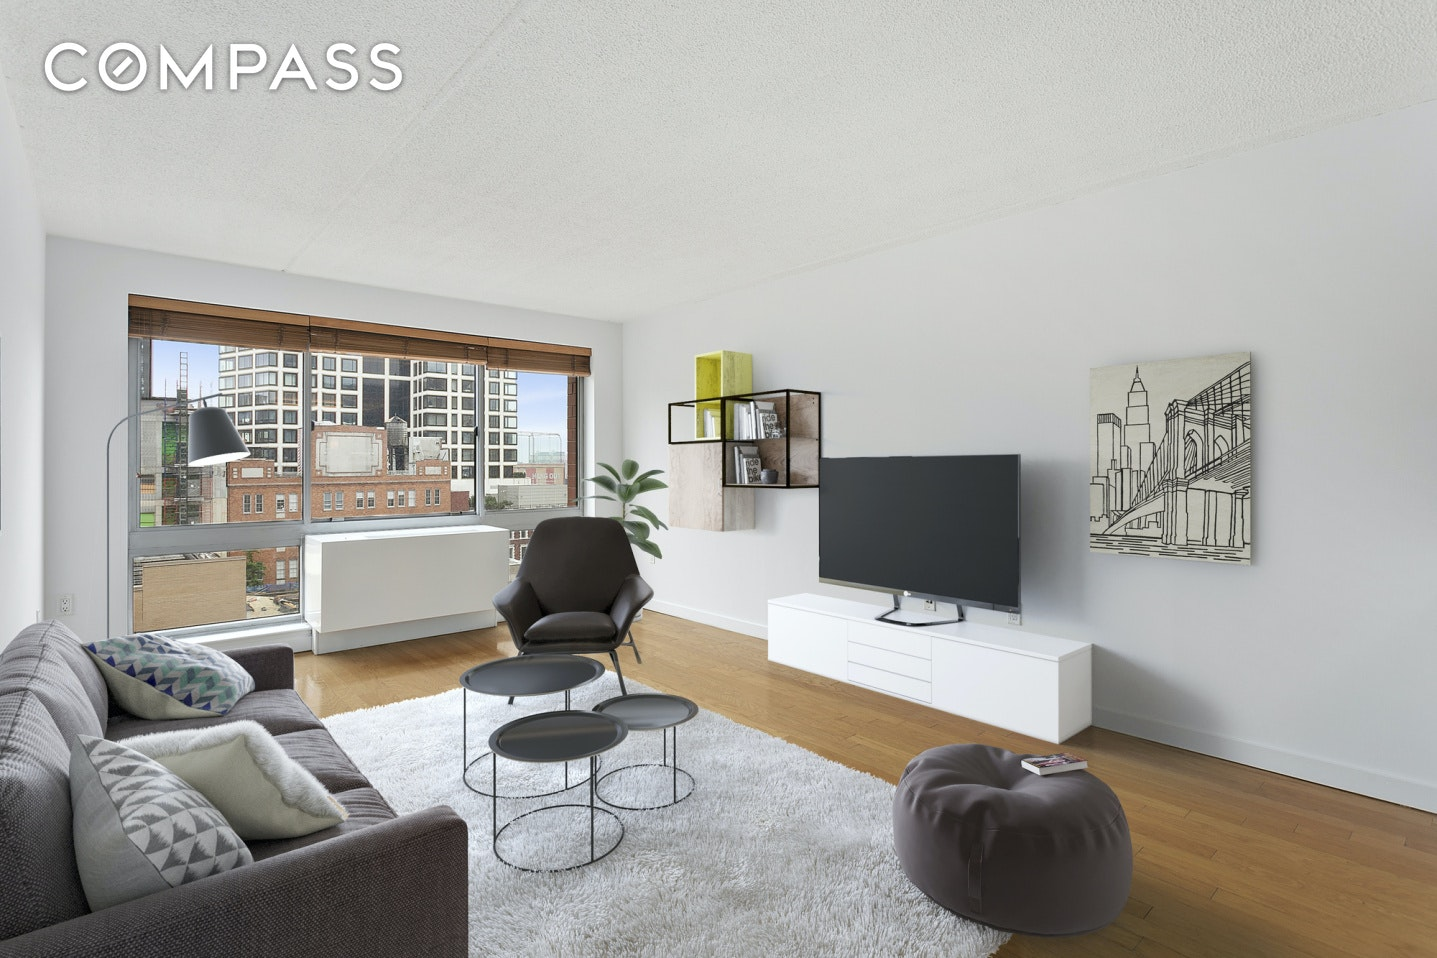 A sun-filled and immaculate one-bedroom home on a high floor in a full service, luxury condominium in West Chelsea. Upon entry, you will immediately notice light pouring through the south-facing living room windows that frame layered city views. A large, open kitchen is equipped with granite countertops, stainless steel appliances, a plethora of dark wood cabinetry, and a breakfast bar with ample room for seating. The spacious bedroom can easily accommodate a king-sized bed and features a closet with a built-in safe.  Gleaming hardwood floors, freshly painted walls, and HVAC units are throughout, and the LG stackable washer/dryer with a steam function to eliminate wrinkles (saving money on dry cleaning bills) is an amazing convenience. 555 West 23rd Street is filled with amenities including a gorgeous new lobby, an enormous and pristine fitness center loaded with a wide range of equipment including a pilates reformer, a 9,000 square foot planted and furnished courtyard with beautiful fountains and reflecting pool, a lounge that is about to be completely redone, garage, and bicycle storage. With the Highline, Hudson River Park, Chelsea Piers, Hudson Yards, the art galleries of West Chelsea, and some of New York City's finest restaurants and hottest nightspots practically at your doorstep, this unbelievable locations offers the perfect blend of lifestyle and convenience.